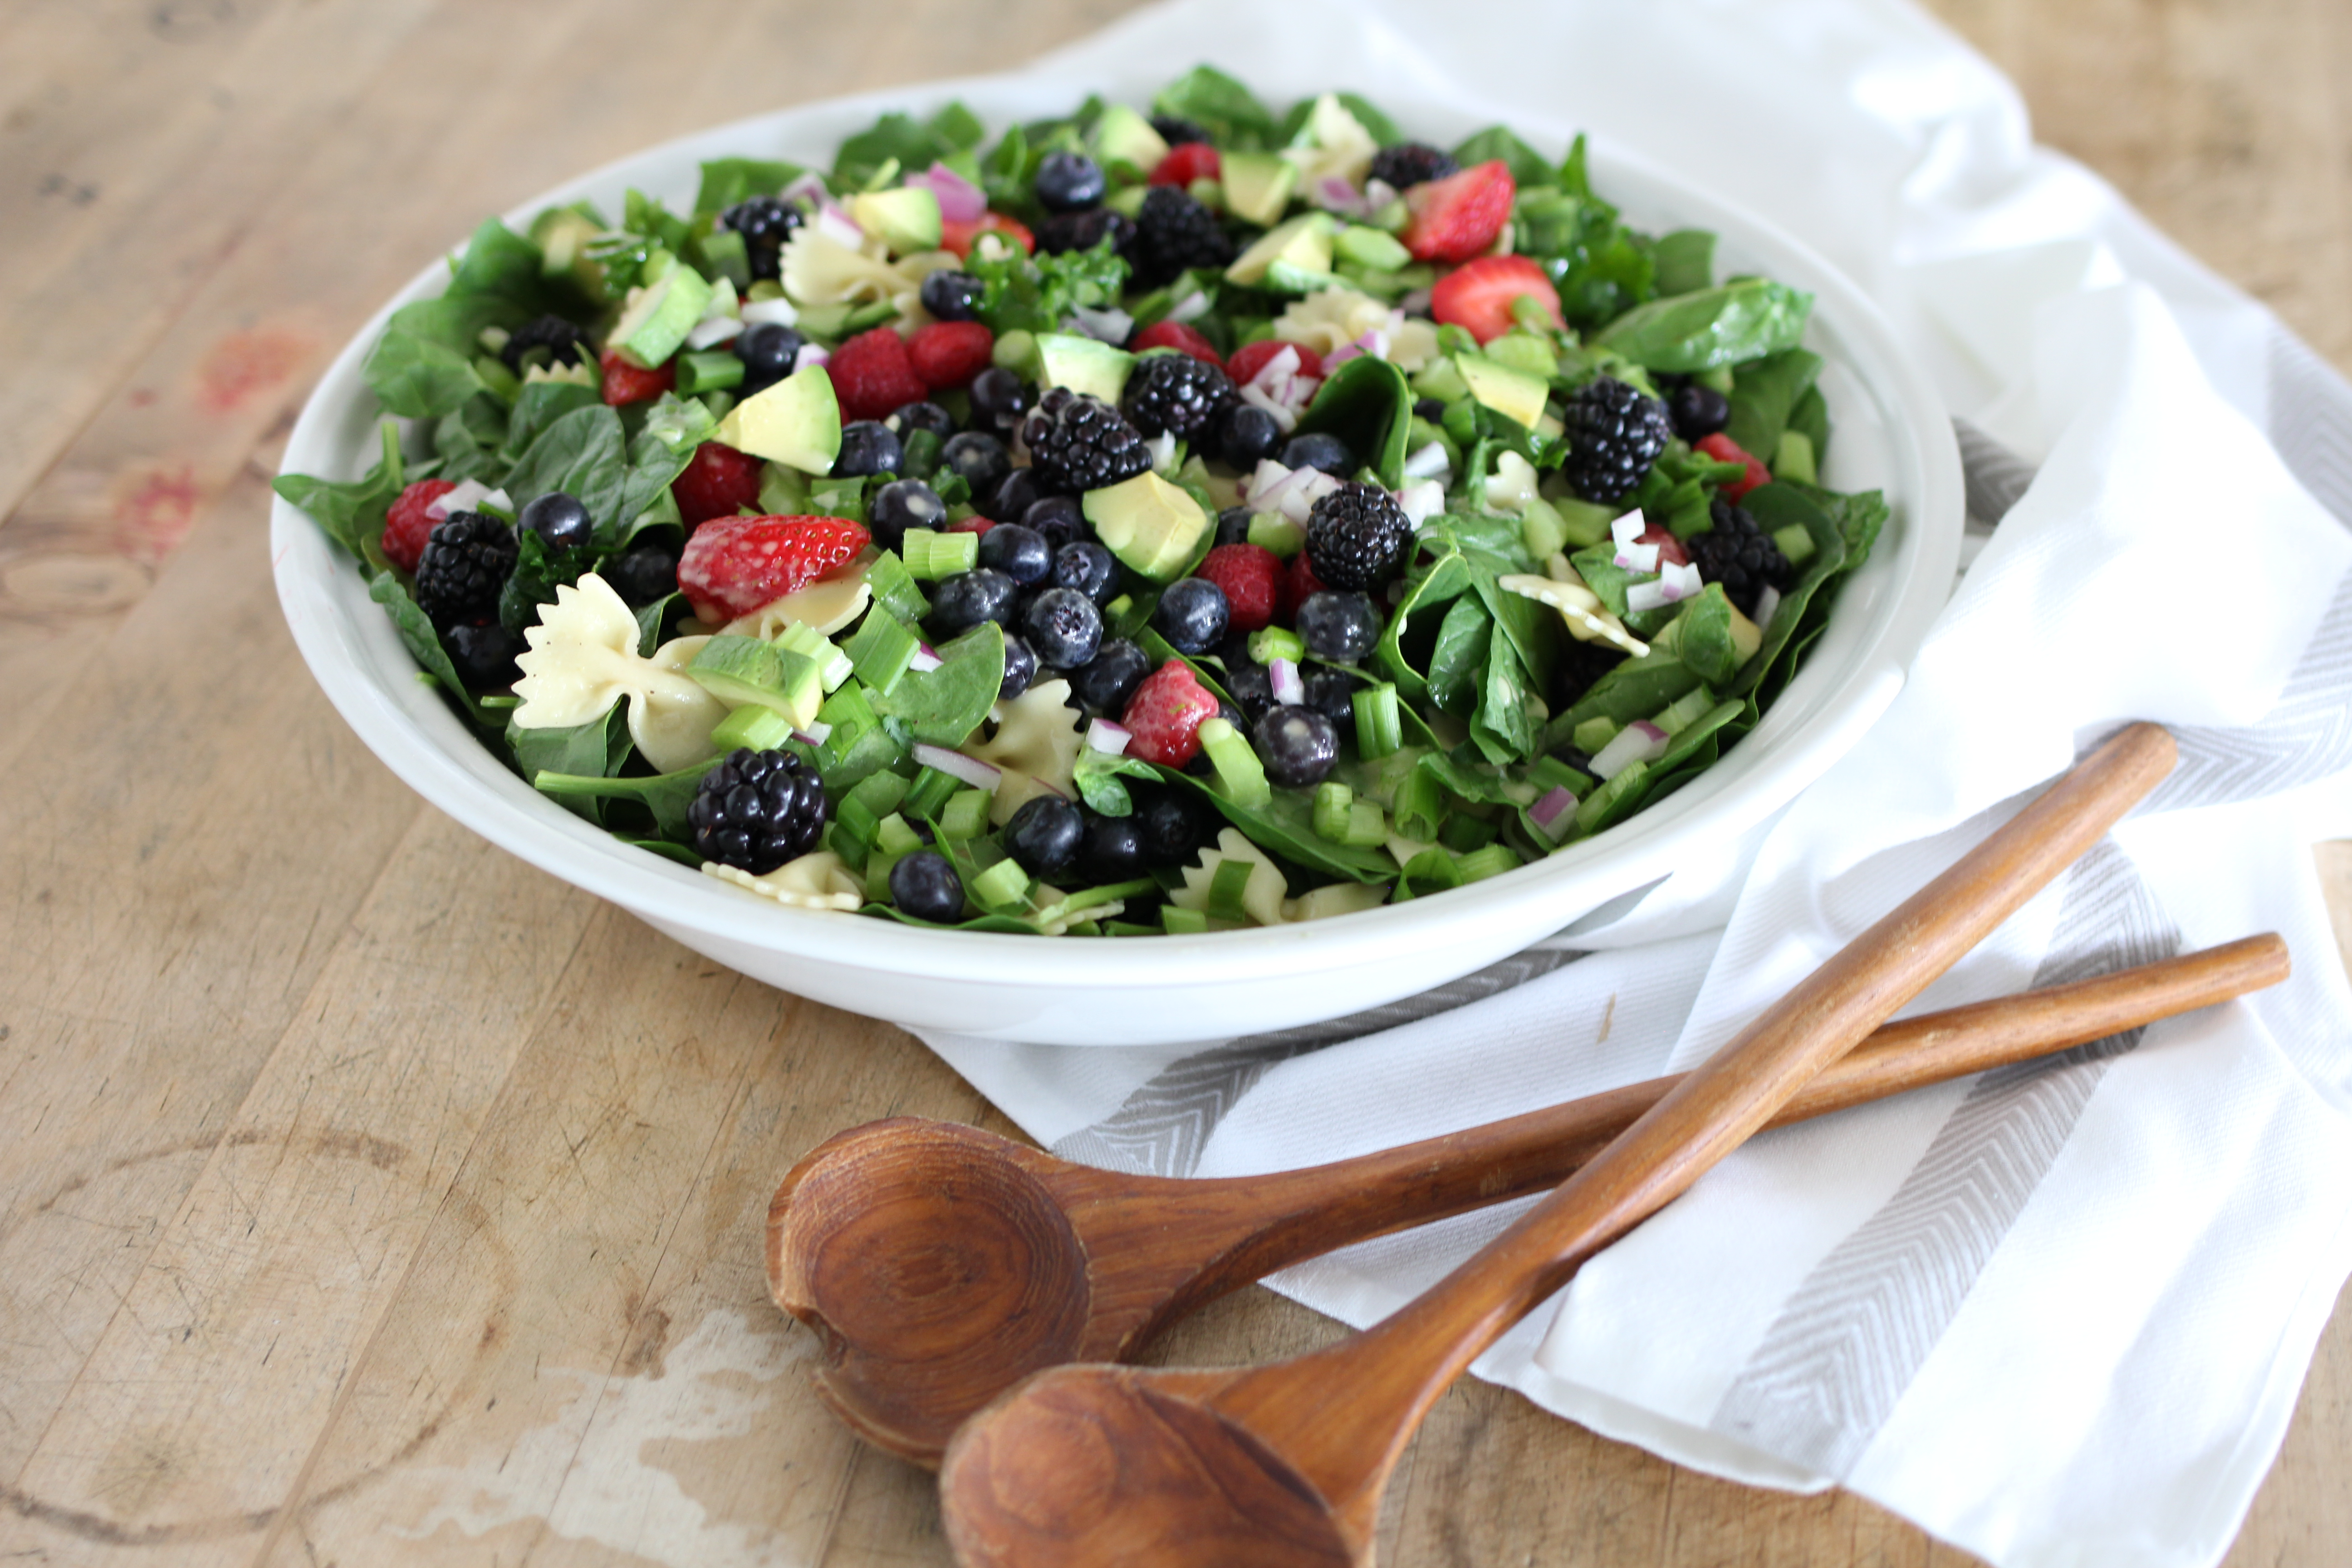 Springtime Spinach and Pasta Salad with Creamy Citrus Dressing